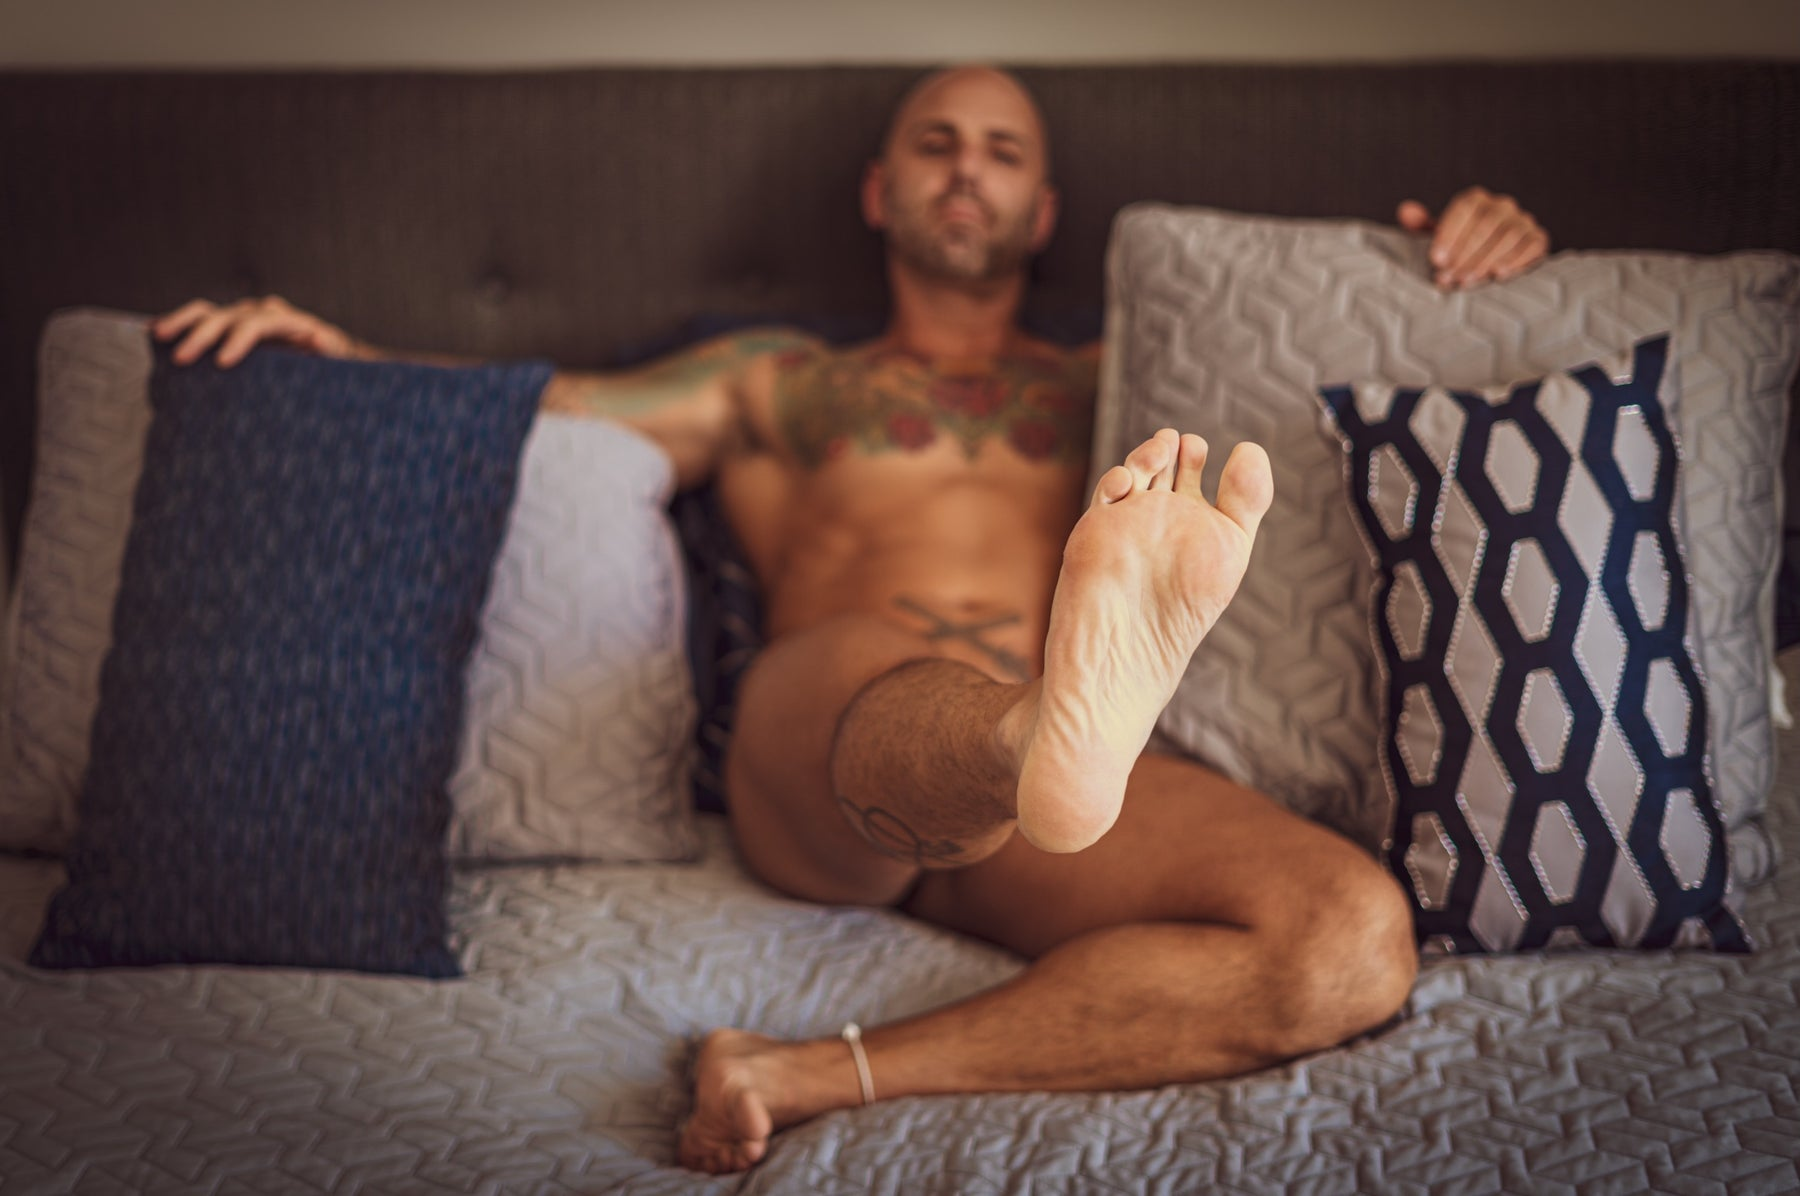 bald feet bdsm kinky tattooed inked muscled